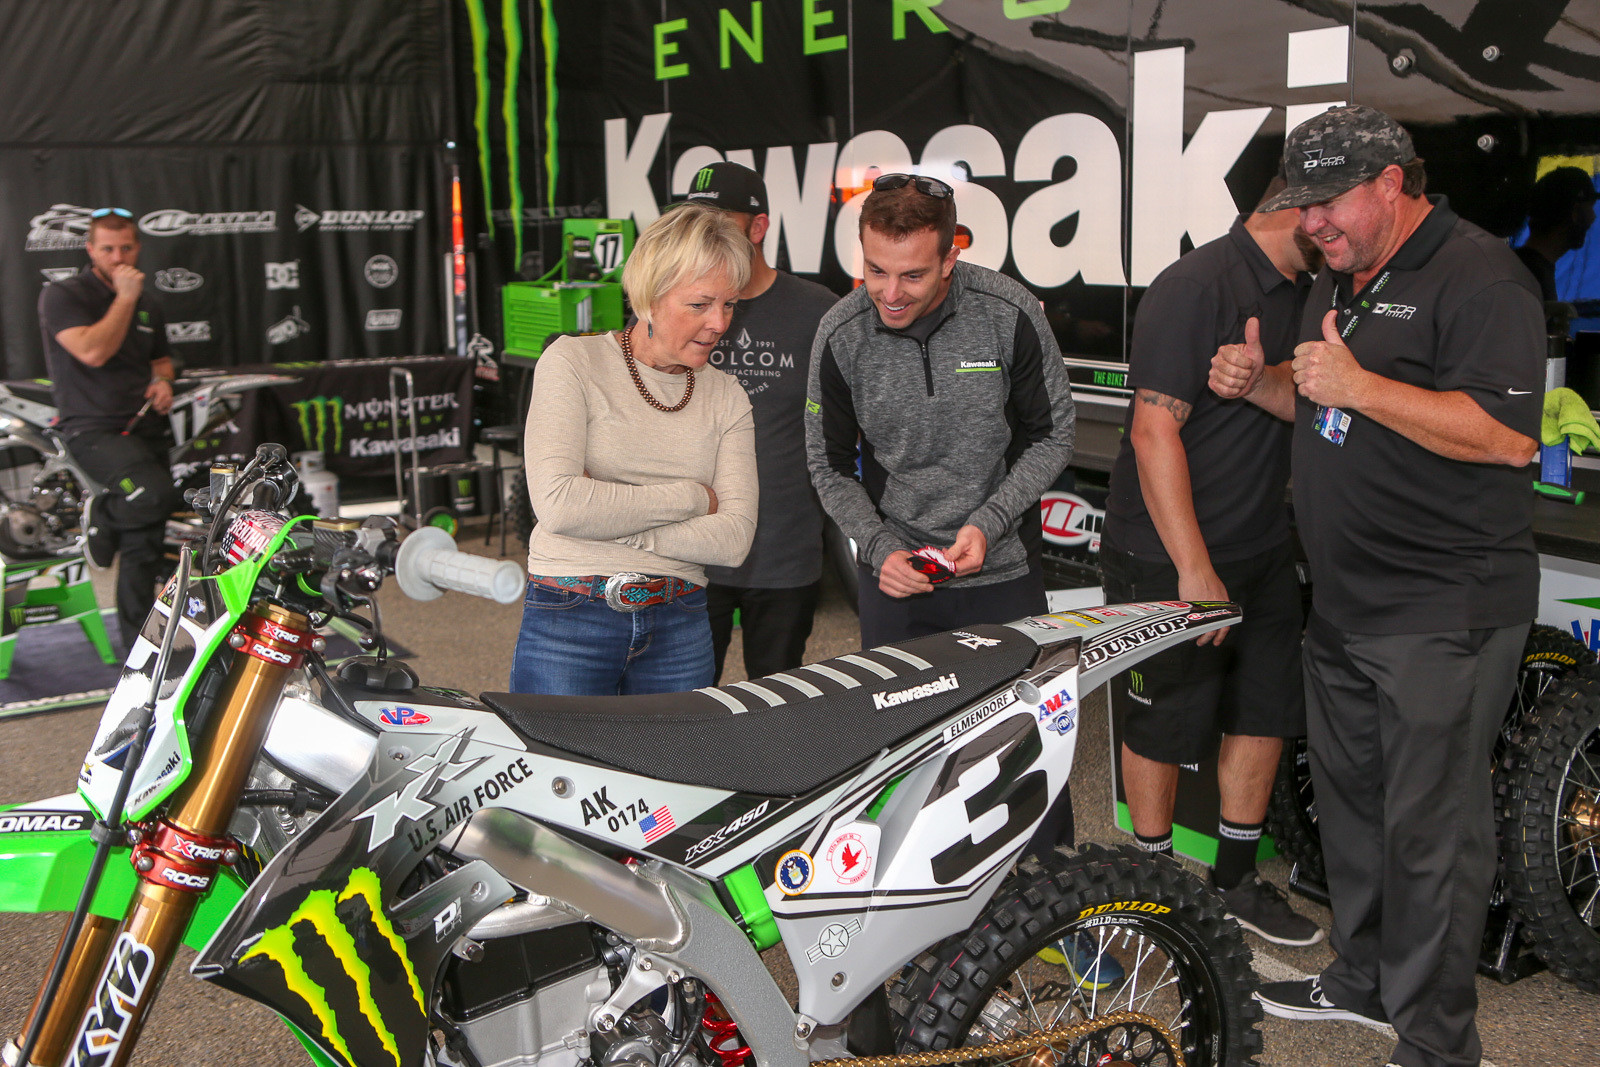 Of course, San Diego is the annual military appreciation race, and the teams had some cool bits this time around. Each of the Monster Energy Kawasaki bikes featured a different story. Eli Tomac's bike had his brother Greg's Air Force base, air wing insignia, and tail number info on it. Here, Greg checks out the bike, while his mom, Kathy, and D'Cor's Danny Dobey look on.